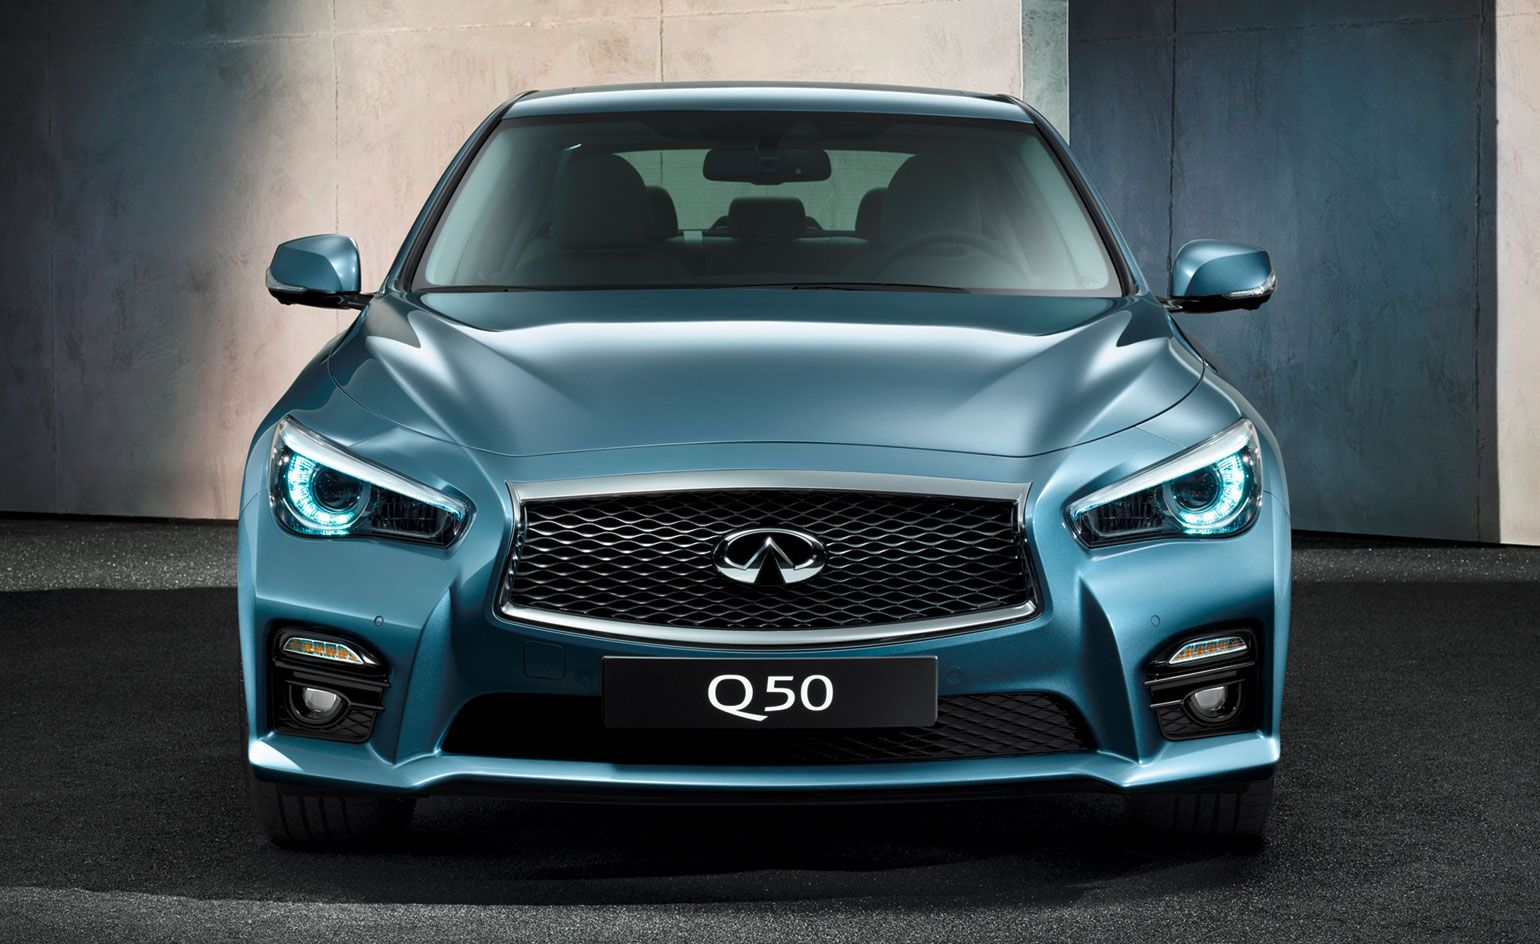 Stealth tactics: Infiniti ups its game with the Q50 | Lifestyle | Wallpaper* Magazine